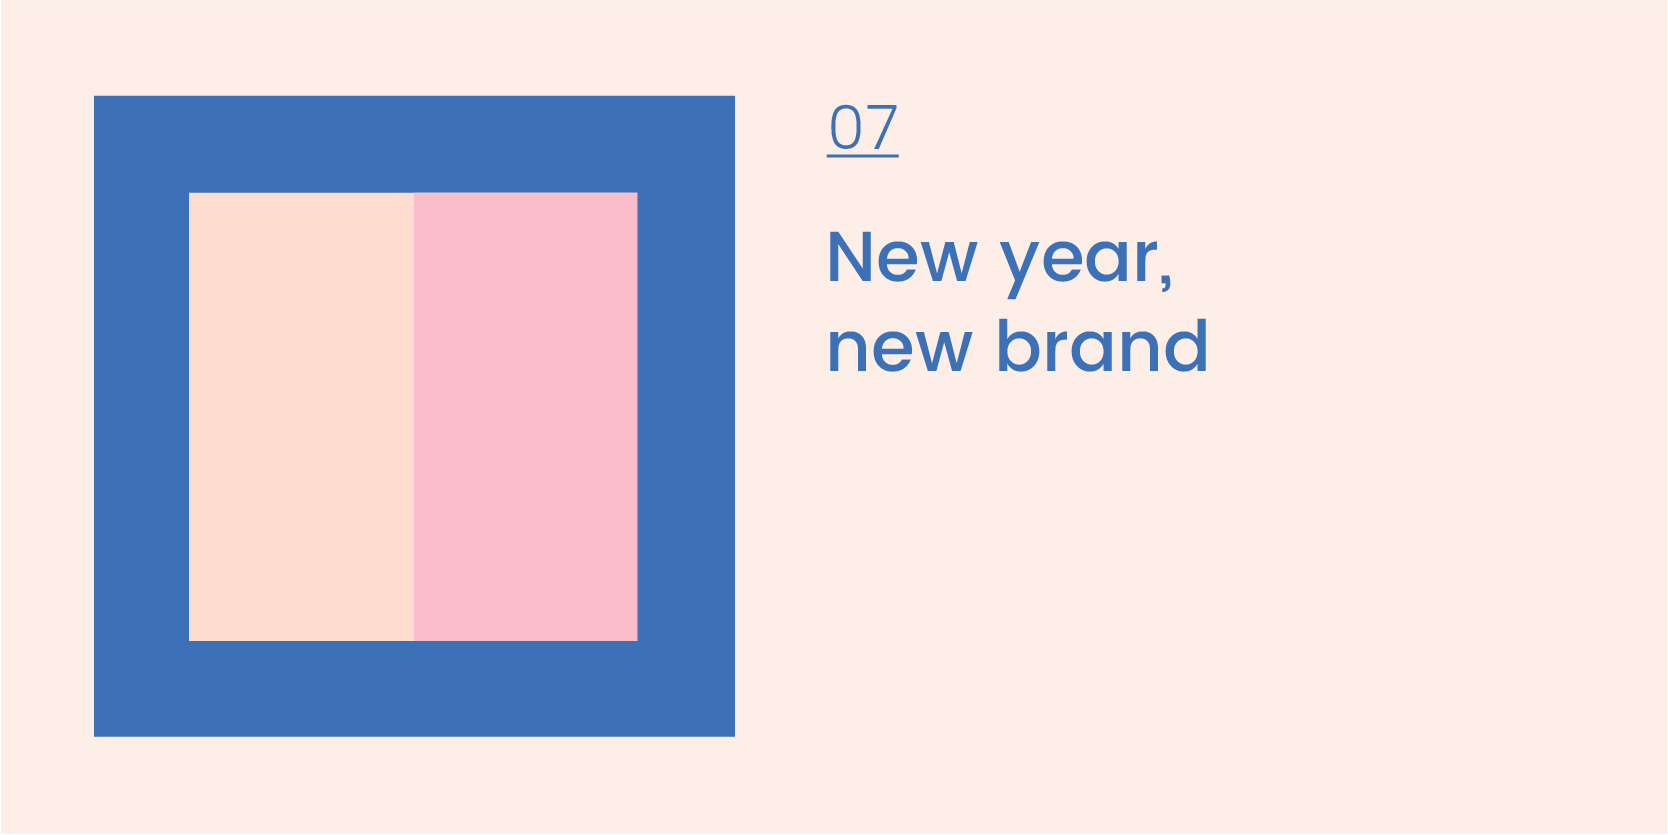 07 New year new brand-02.png